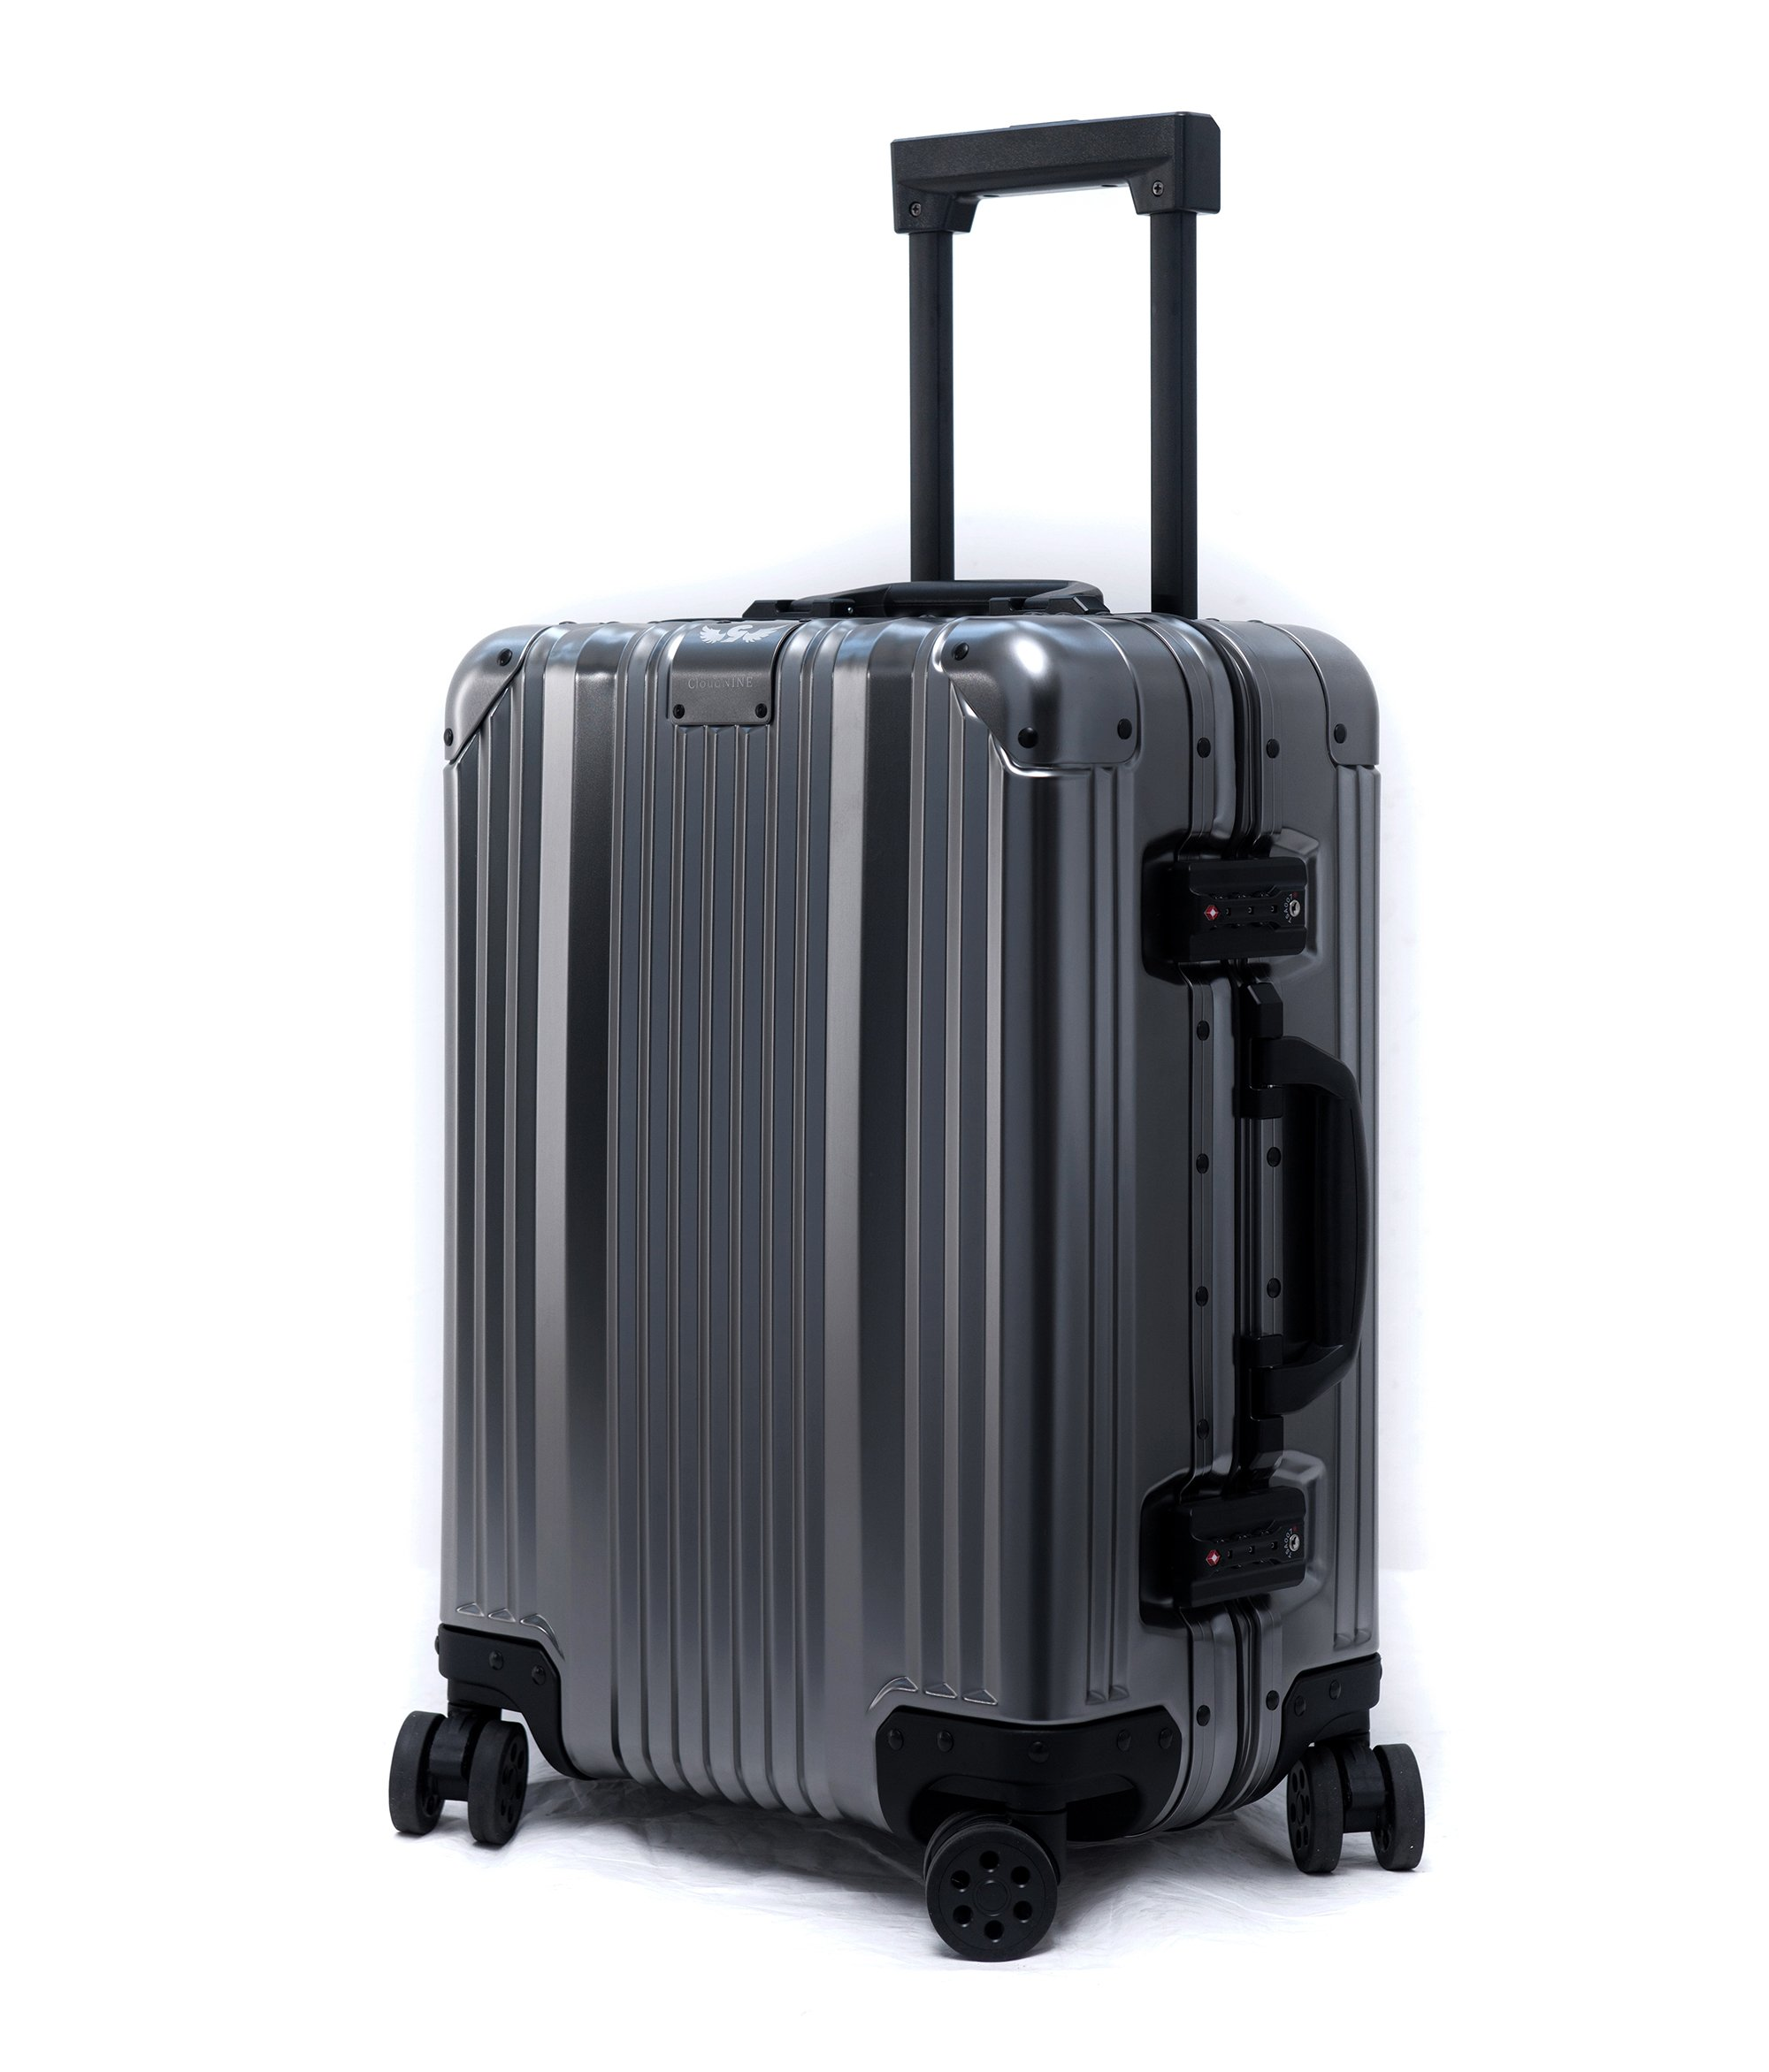 Cloud 9 - All Aluminum Luxury Hard Case Carry-On 20'' Durable with 360 Degree 4 Wheel Spinner TSA Approved (2017 Model)